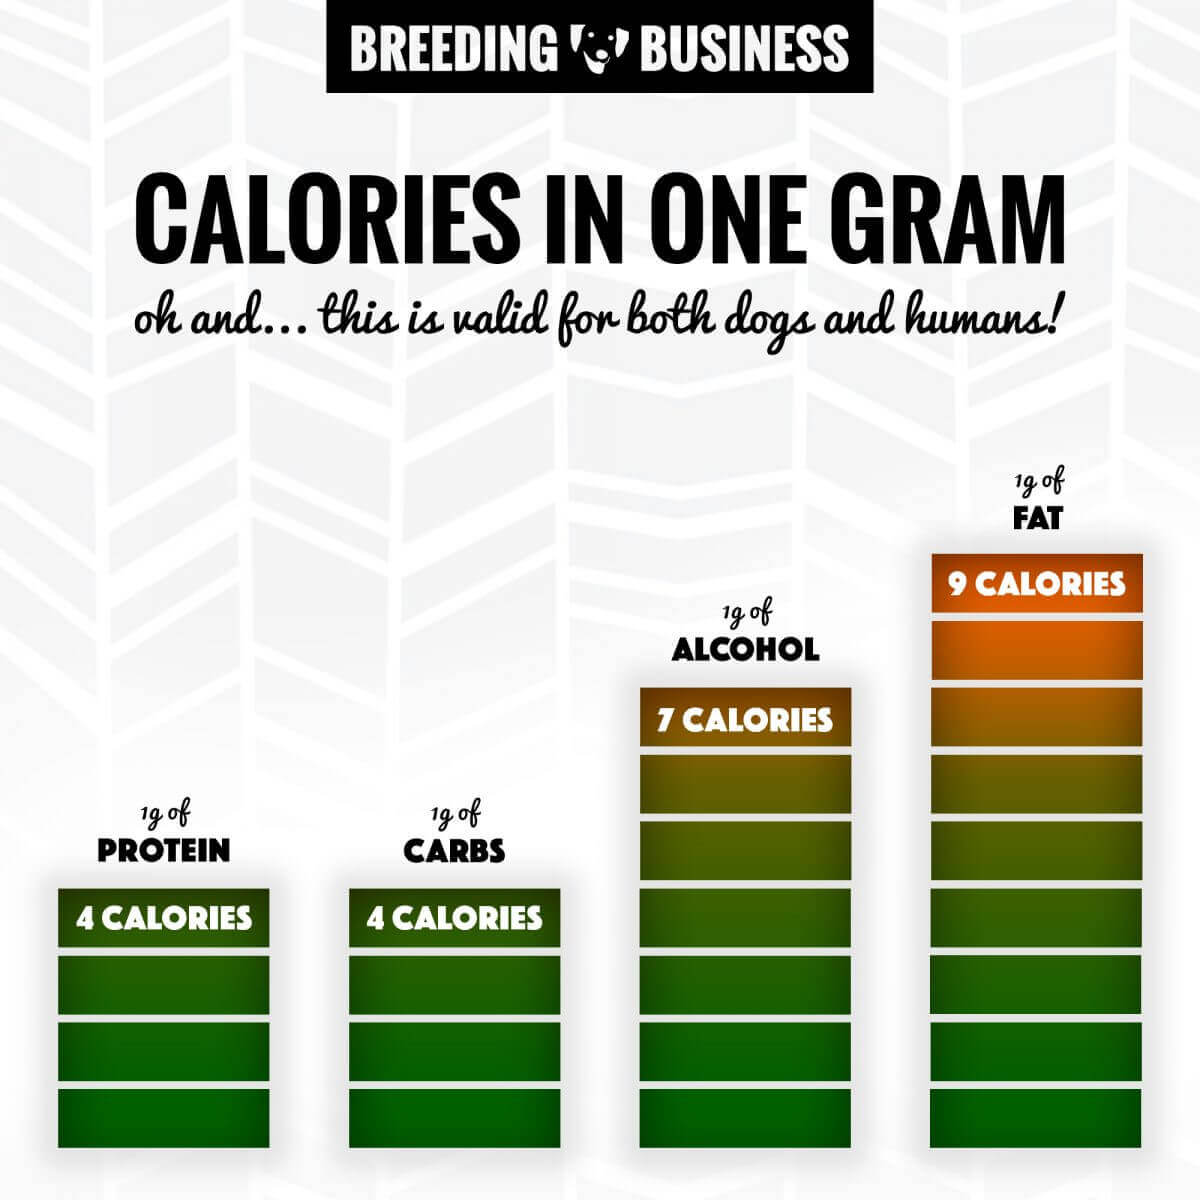 calories in one gram of protein, carbohydrates, alcohol and fat